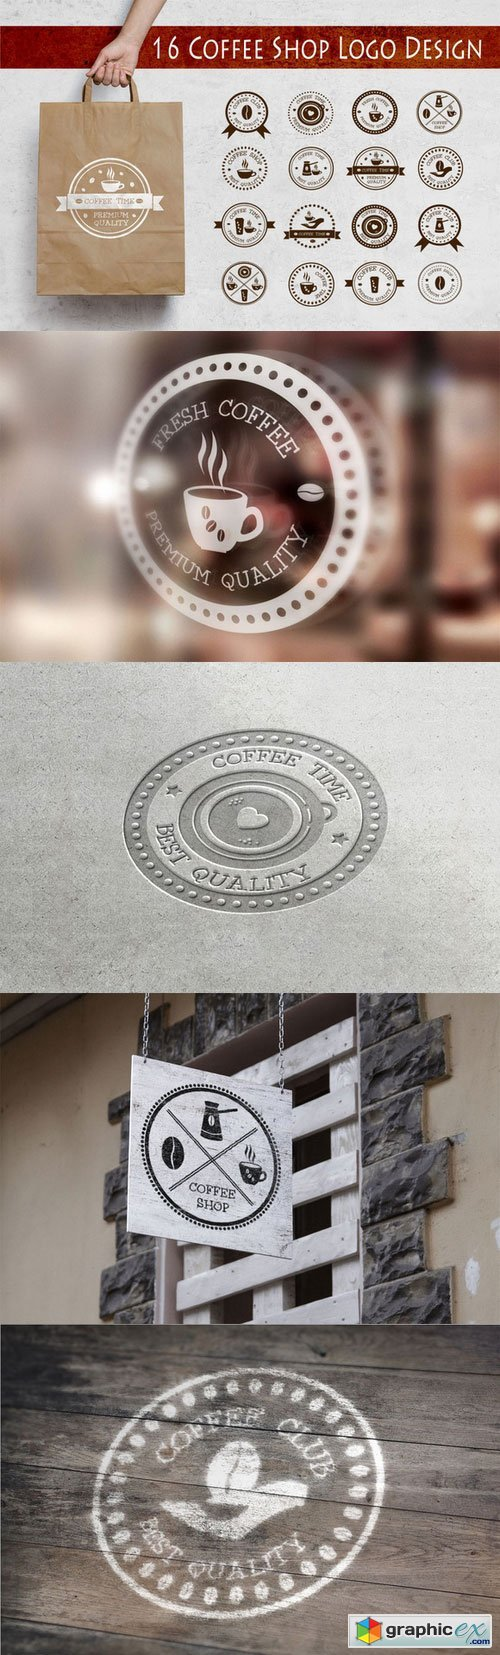 16 Coffee Shop Logo Design